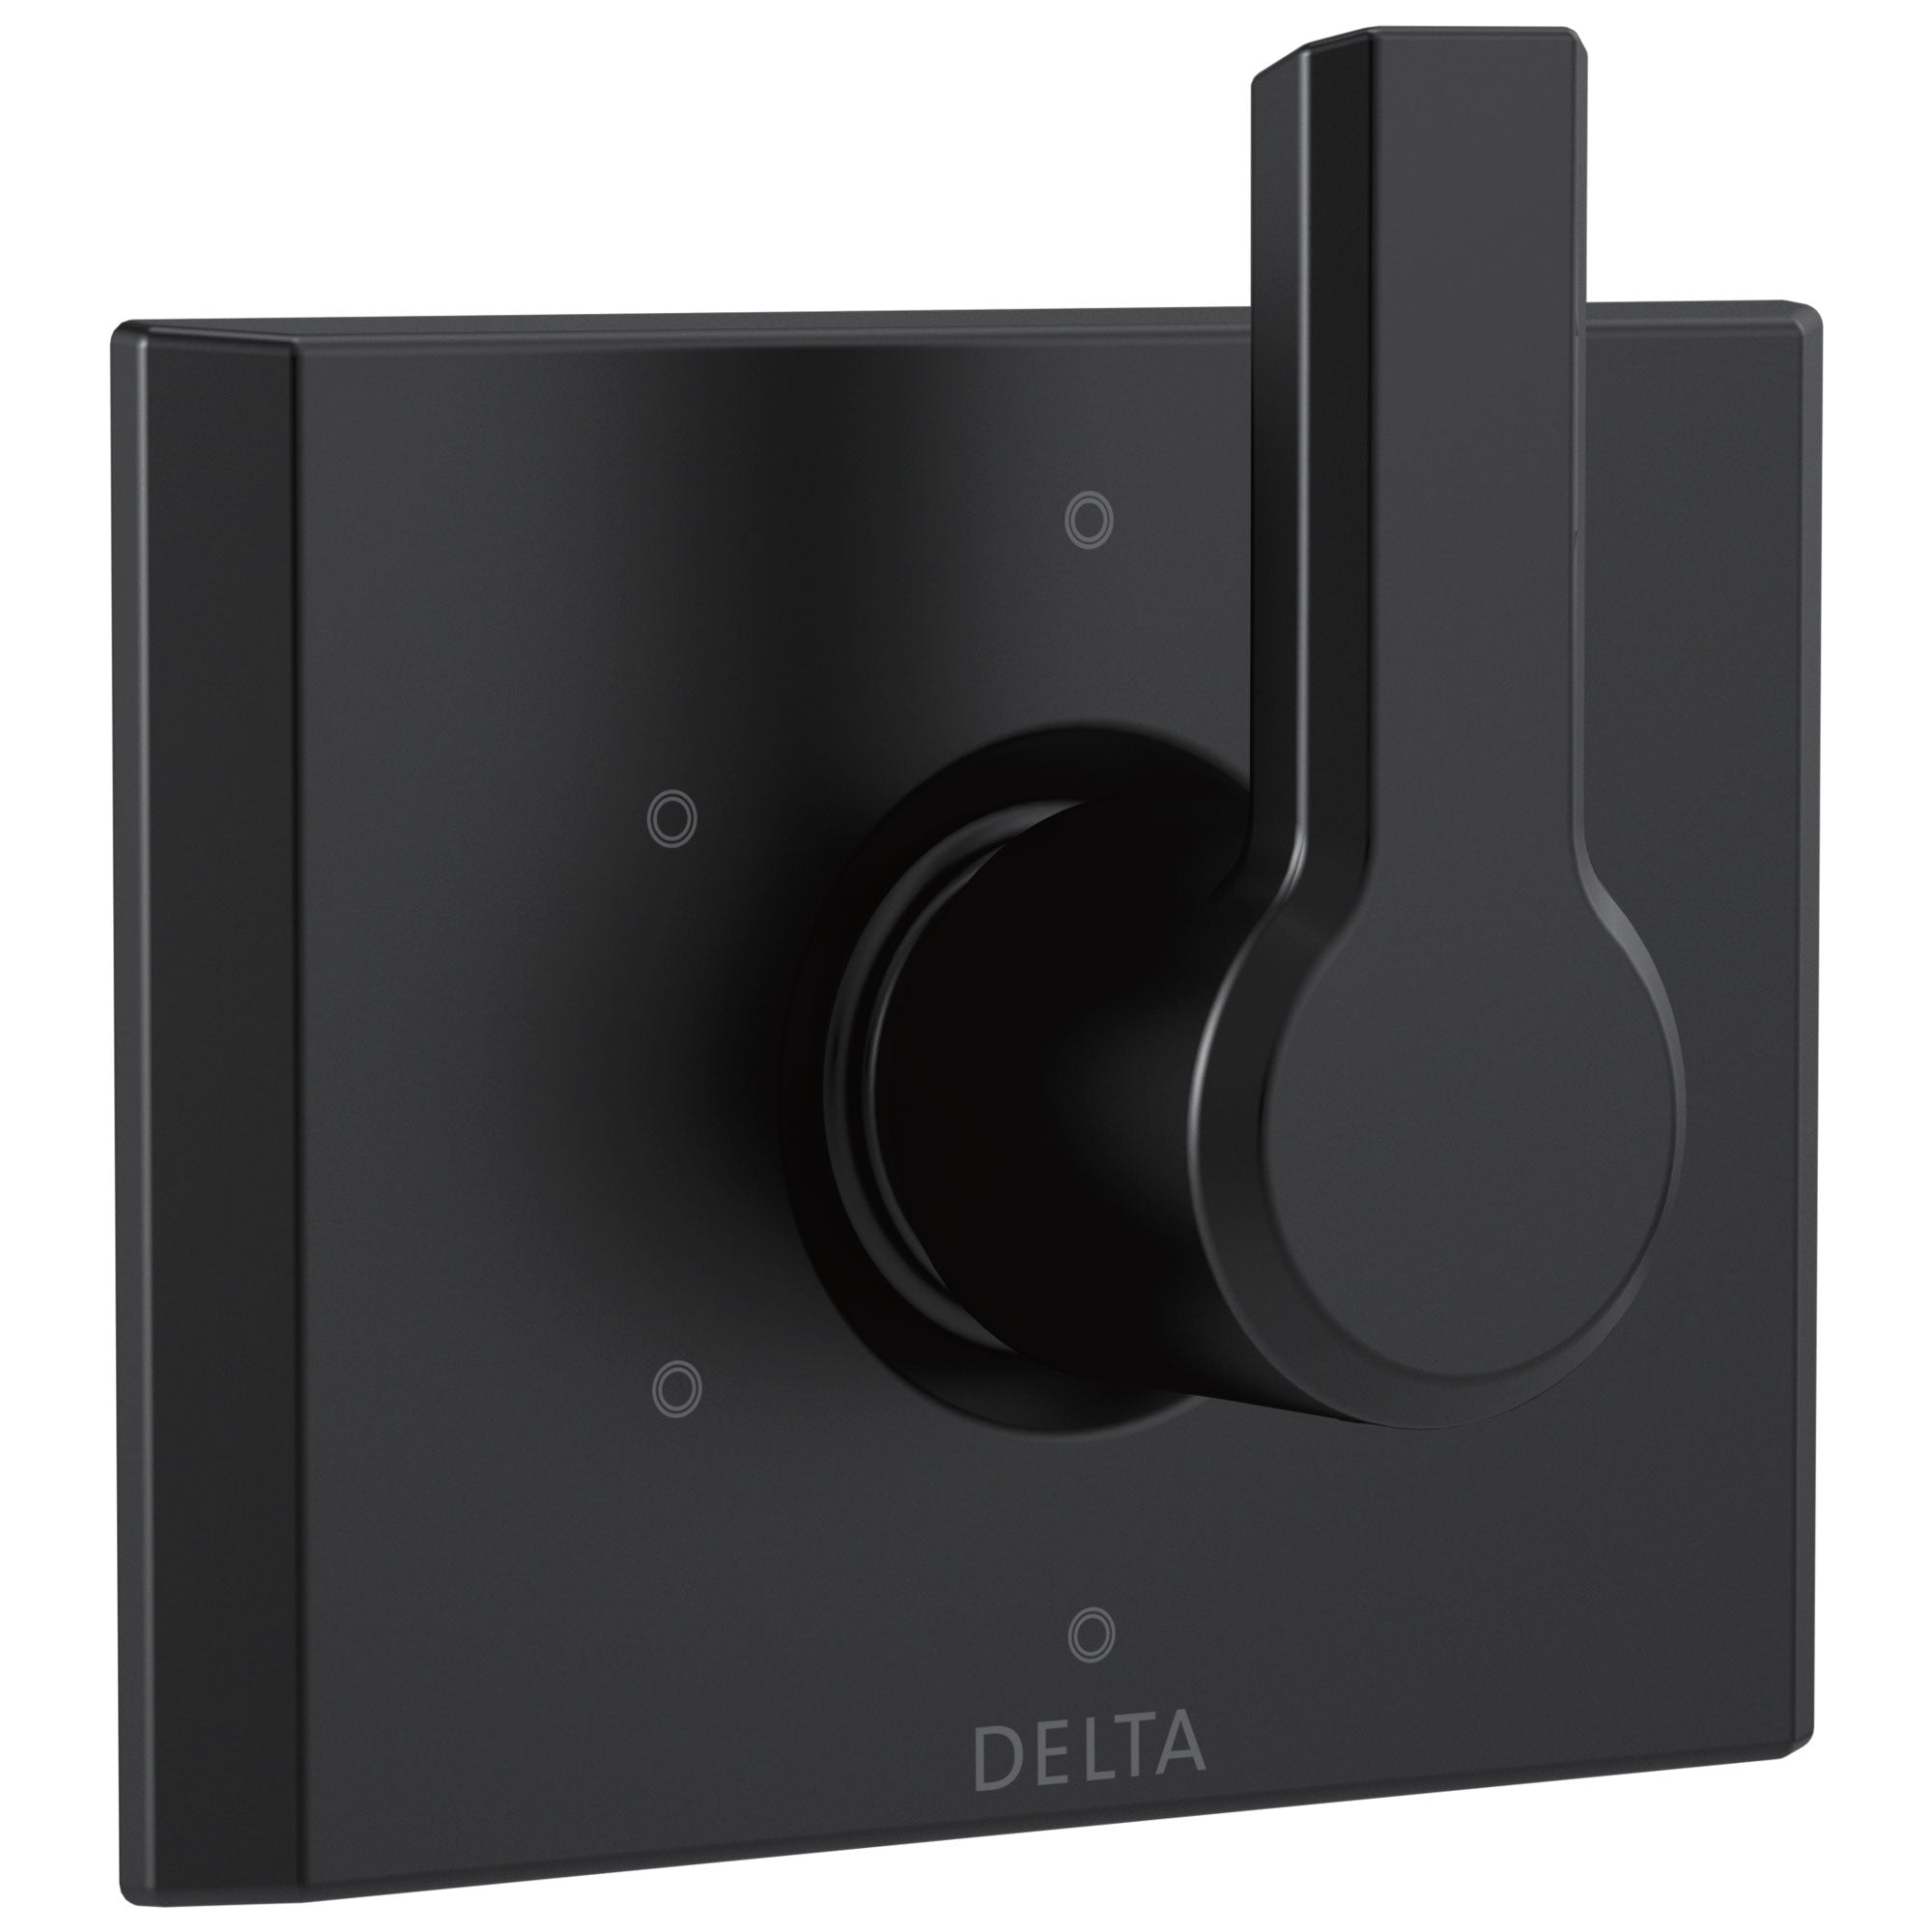 Delta Pivotal Matte Black Finish 6-Setting 3-Port Shower Diverter Trim Kit (Requires Valve) DT11999BL